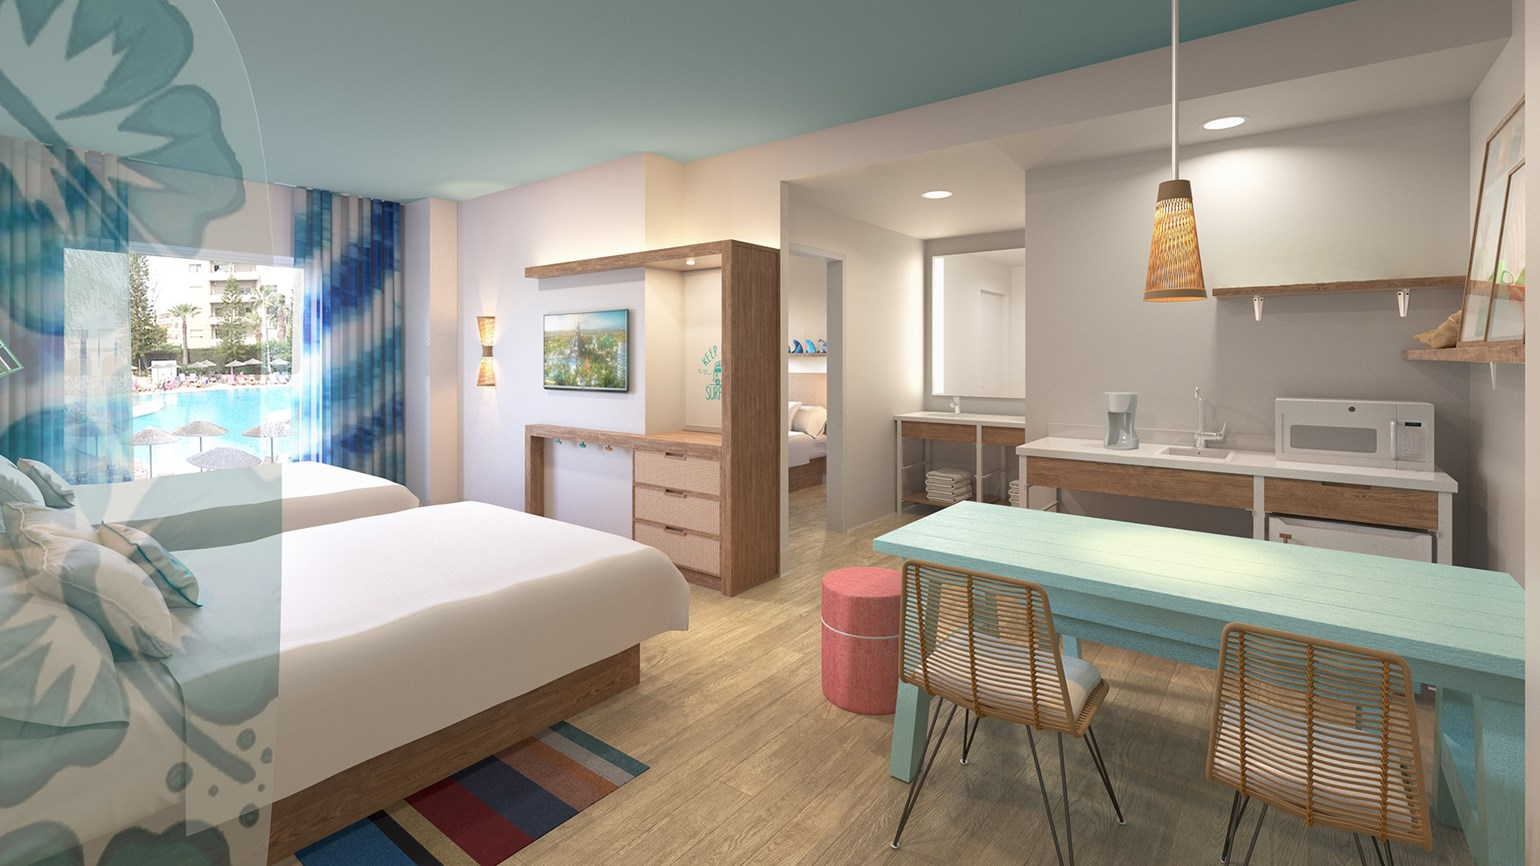 Universal orlando reveals names of budget hotels travel 2 bedroom suites universal studios orlando